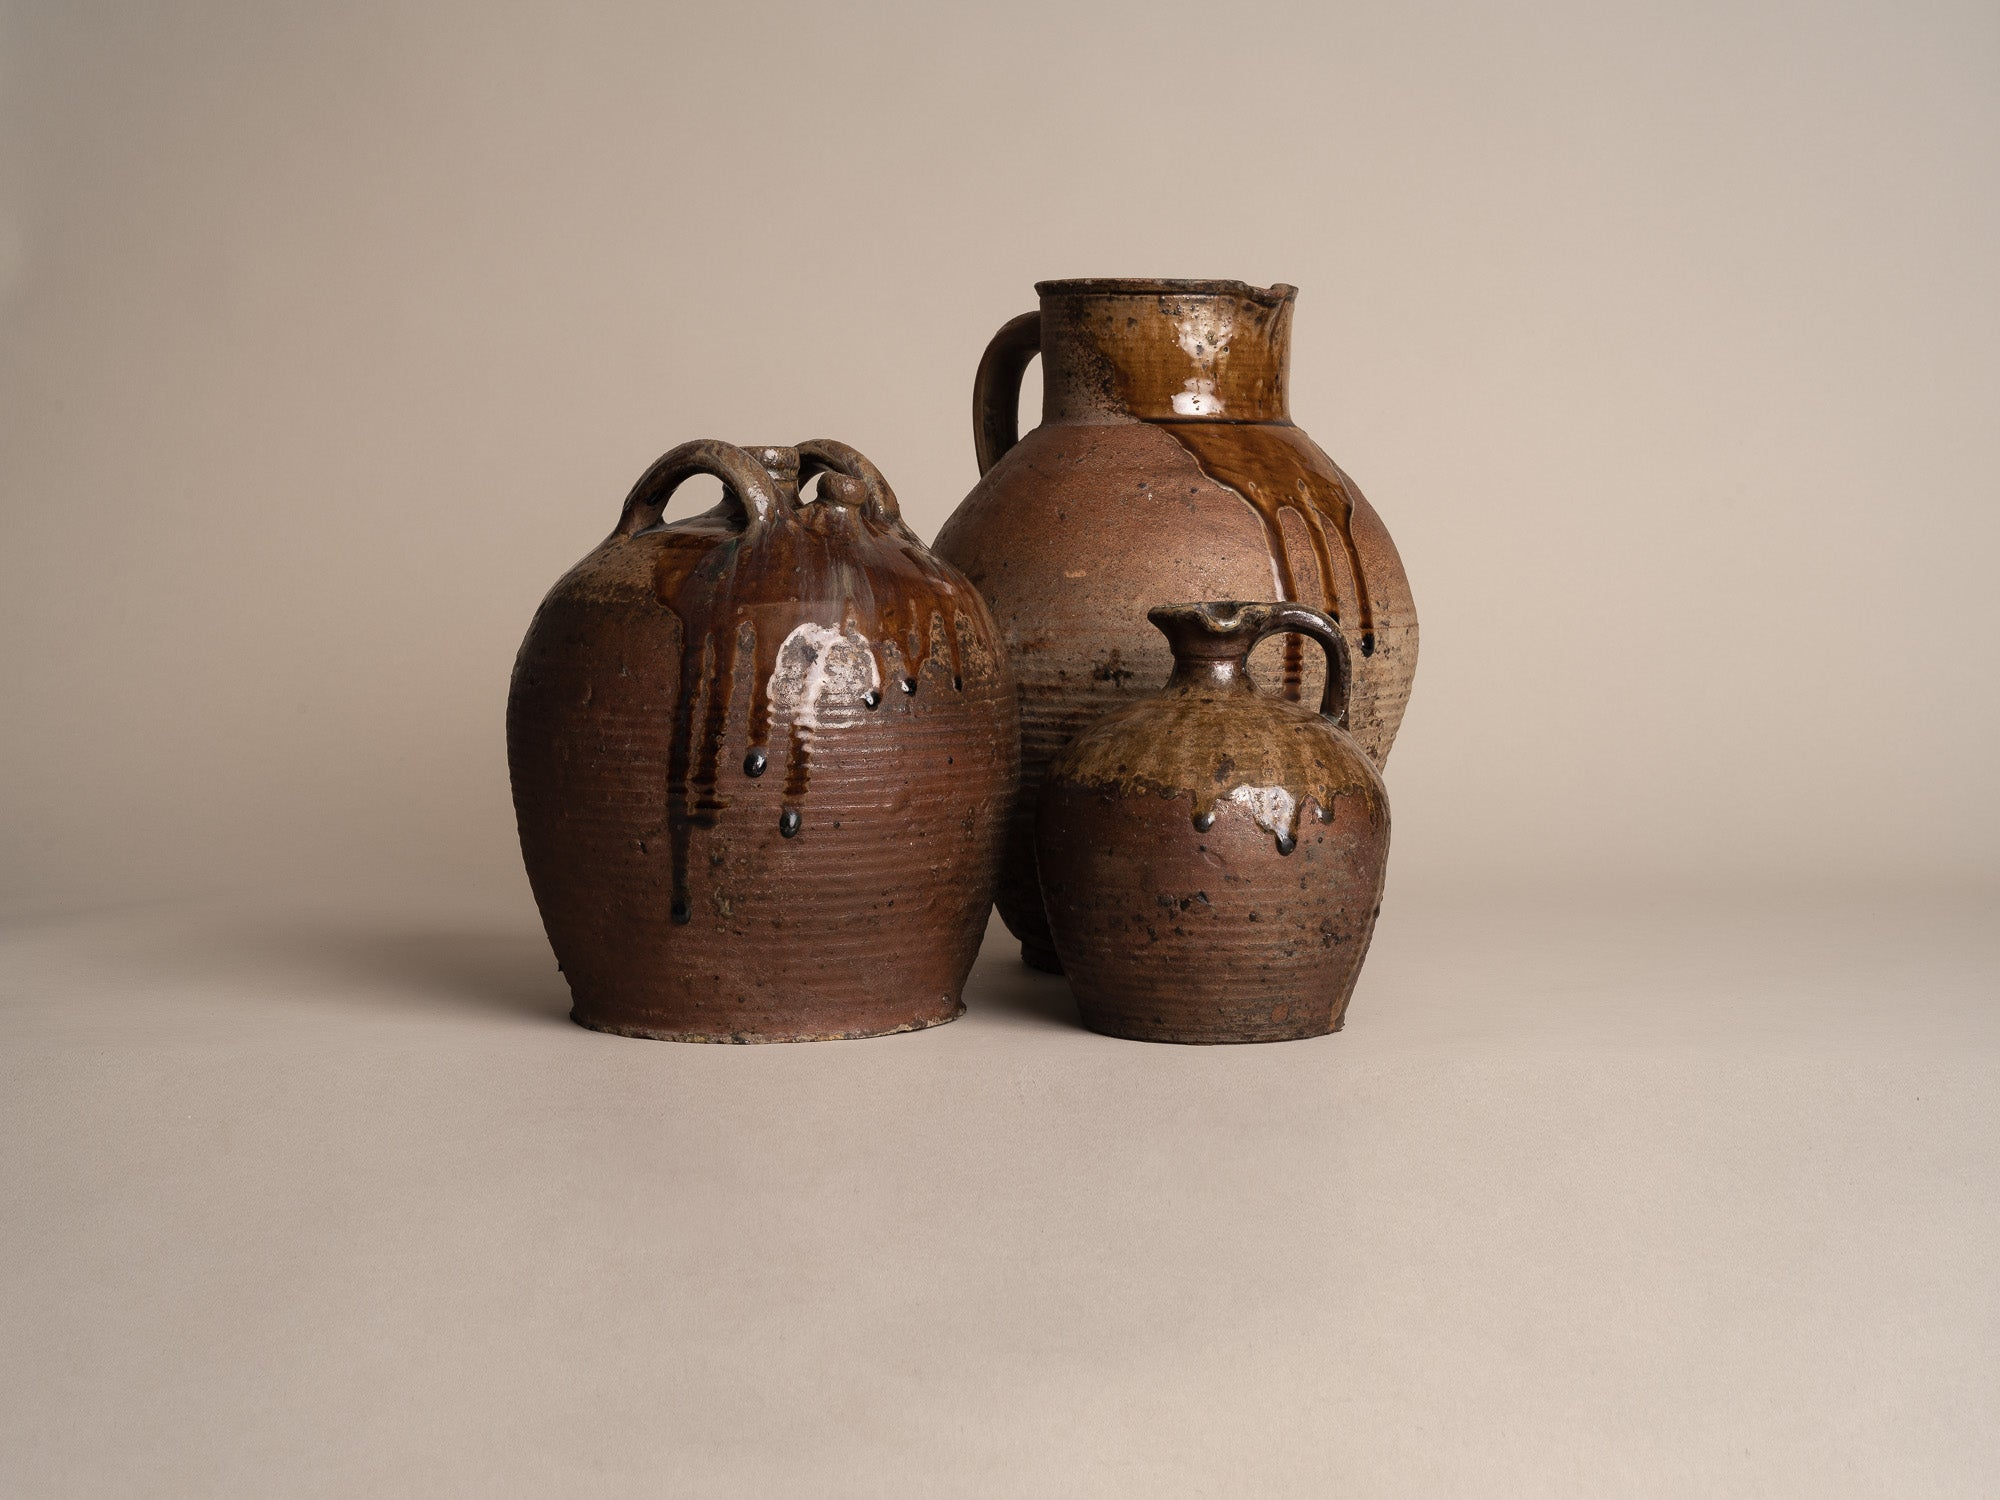 Ensemble de pots en grès de Puisaye, France (XVIIIe et XIXe siècles)..Set of stoneware folk pots by anonymous Puisaye potters, France (18th & 19th century)